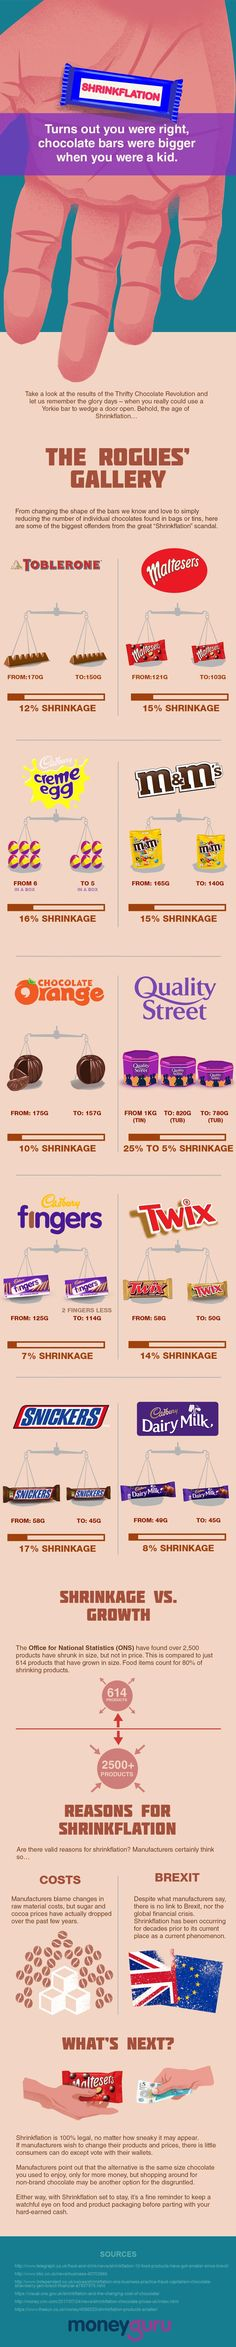 the highest calorie fast food items ranked infographic pinterest fast food items food items and food